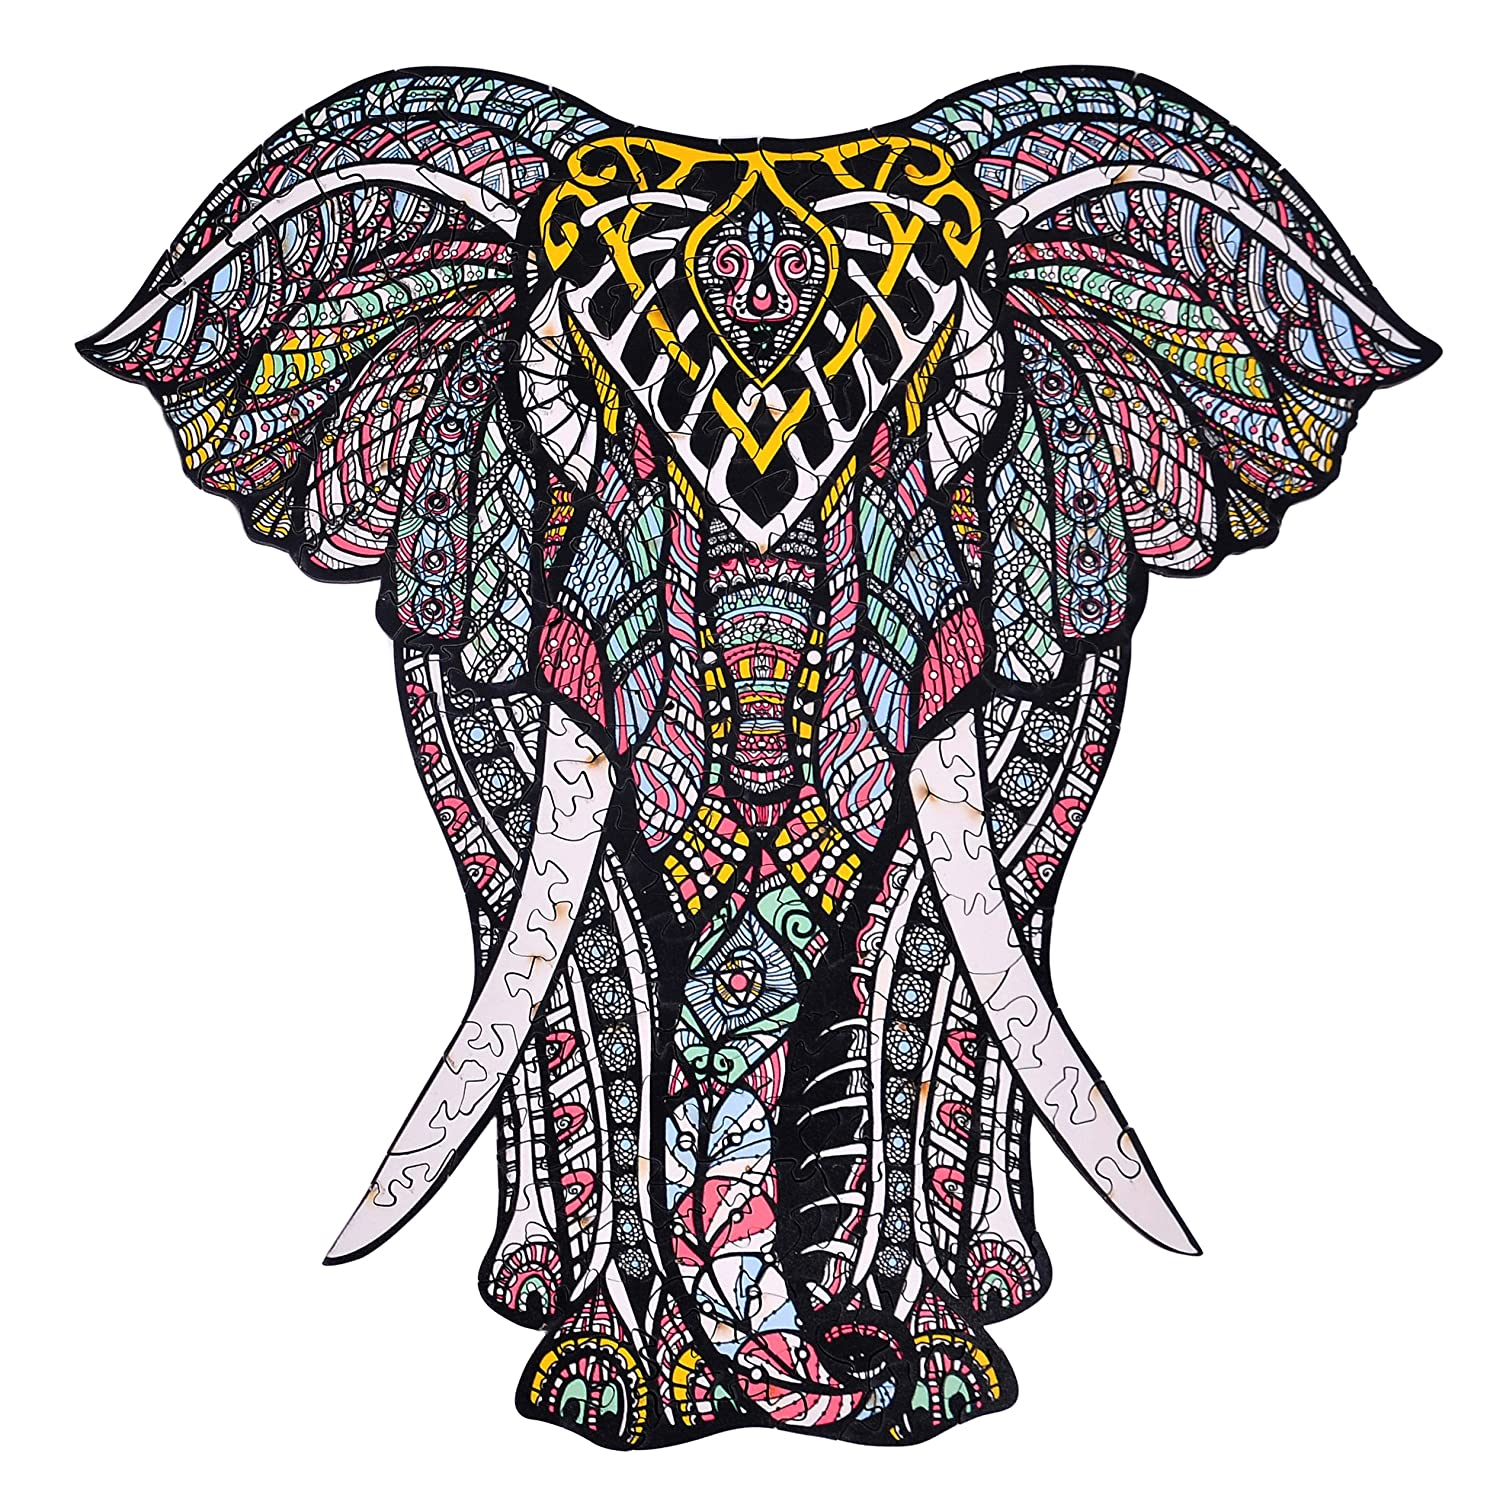 hartmaze Wooden Jigsaw Puzzles – Decorative Elephant HM-06 Small Size Puzzle 171 Unique Shape Jigsaw Pieces-Beautiful Animal for Adults and Kids- Best for Family Game Play Collection.